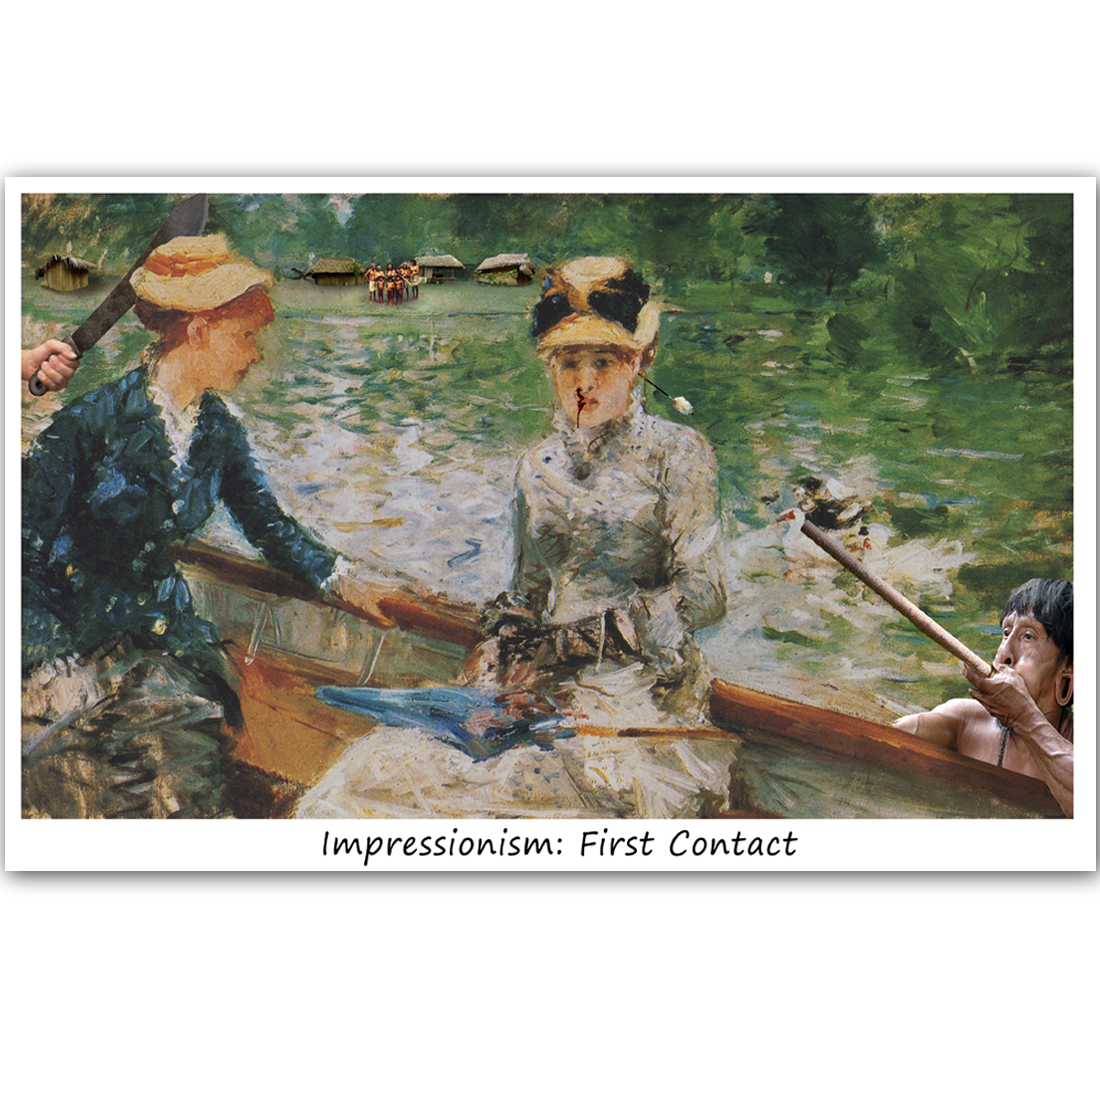 C438 Impressionism First Contact